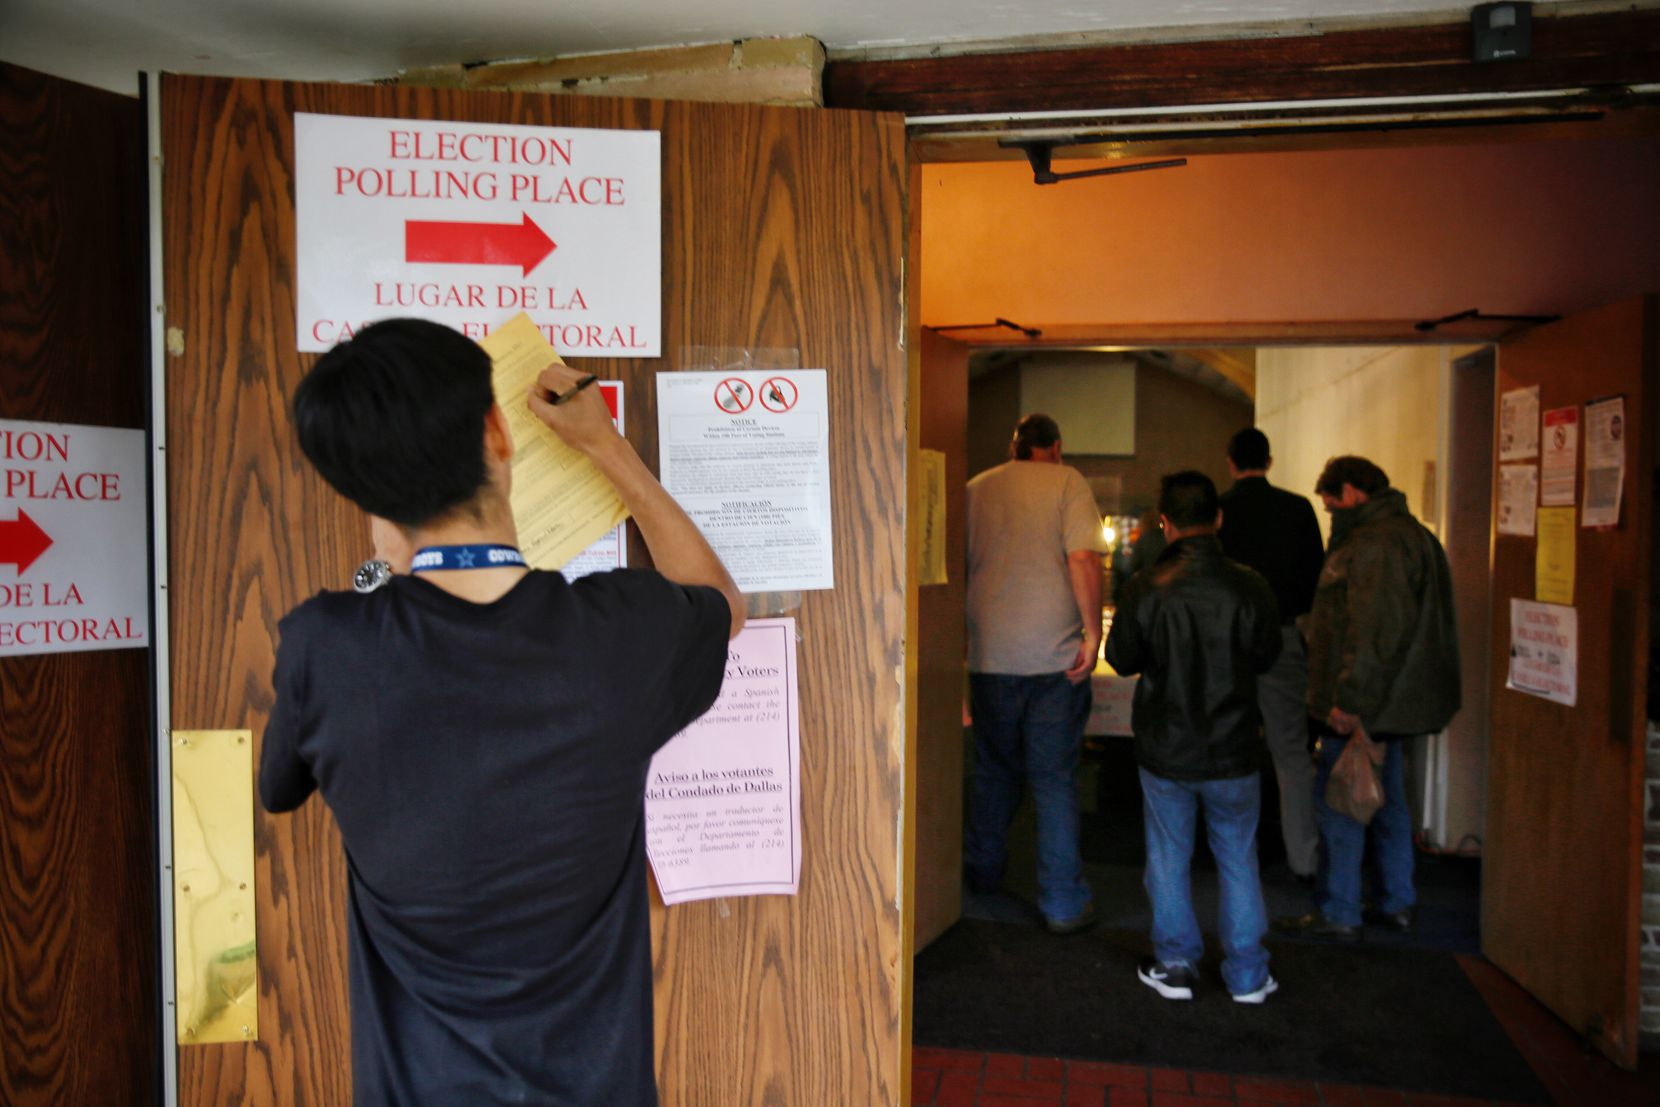 Elias Luevano, a student volunteer from Skyline High School, fills out paperwork as people wait in line to vote at Vickery Baptist Church Tuesday, November 8, 2016 in northeast Dallas. Voters across the country will decide the outcome of the presidential election, as well as various statewide and local races and measures.